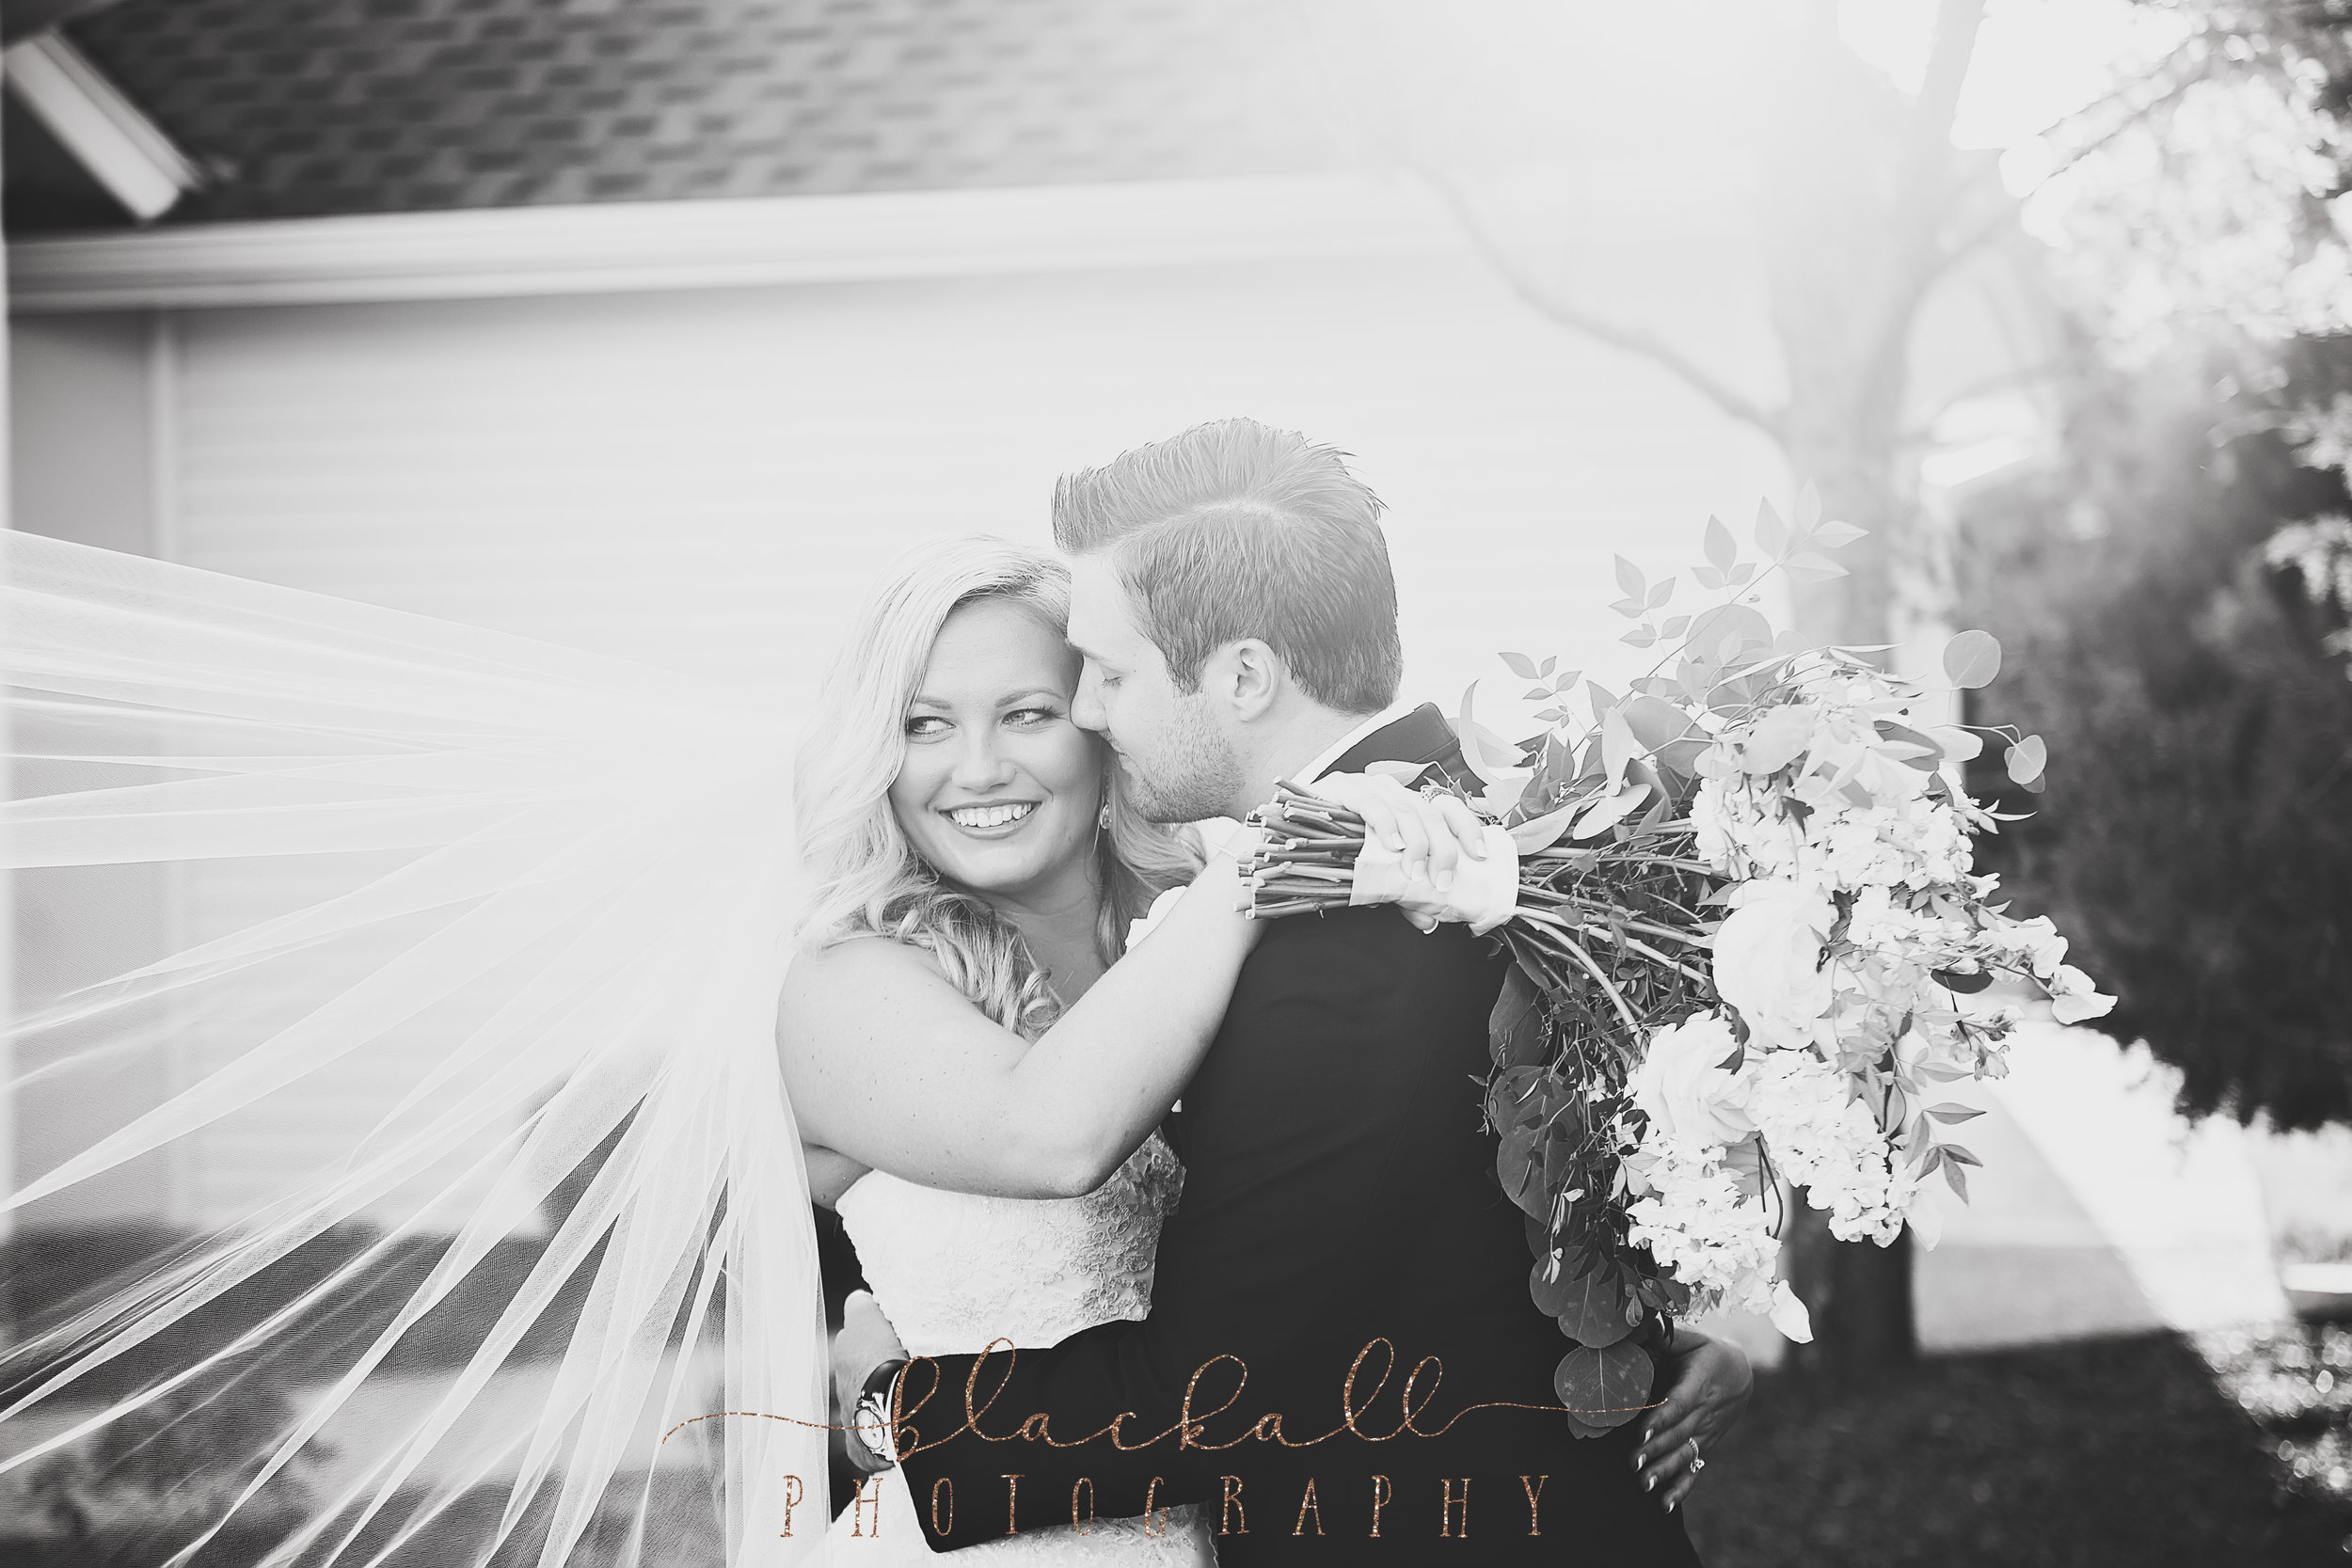 WEDDING_BlackallPhotography_42.JPG